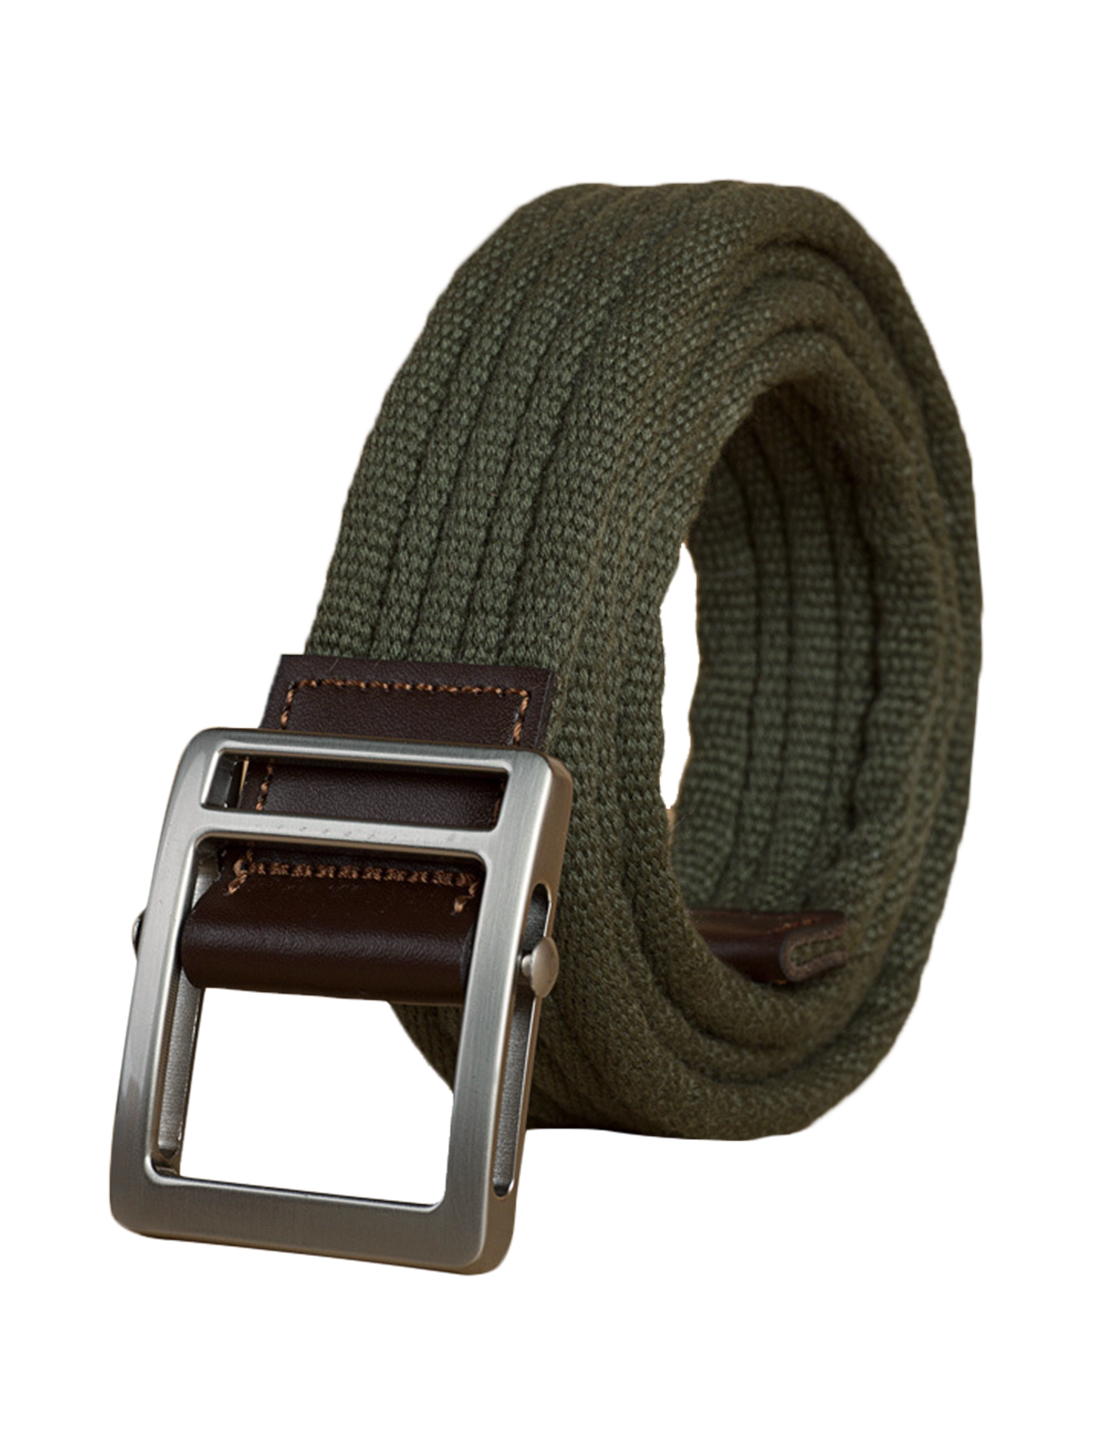 "Unisex Leather Paneled Canvas Slide Buckle Belt Width 1 5/8"" Army Green"